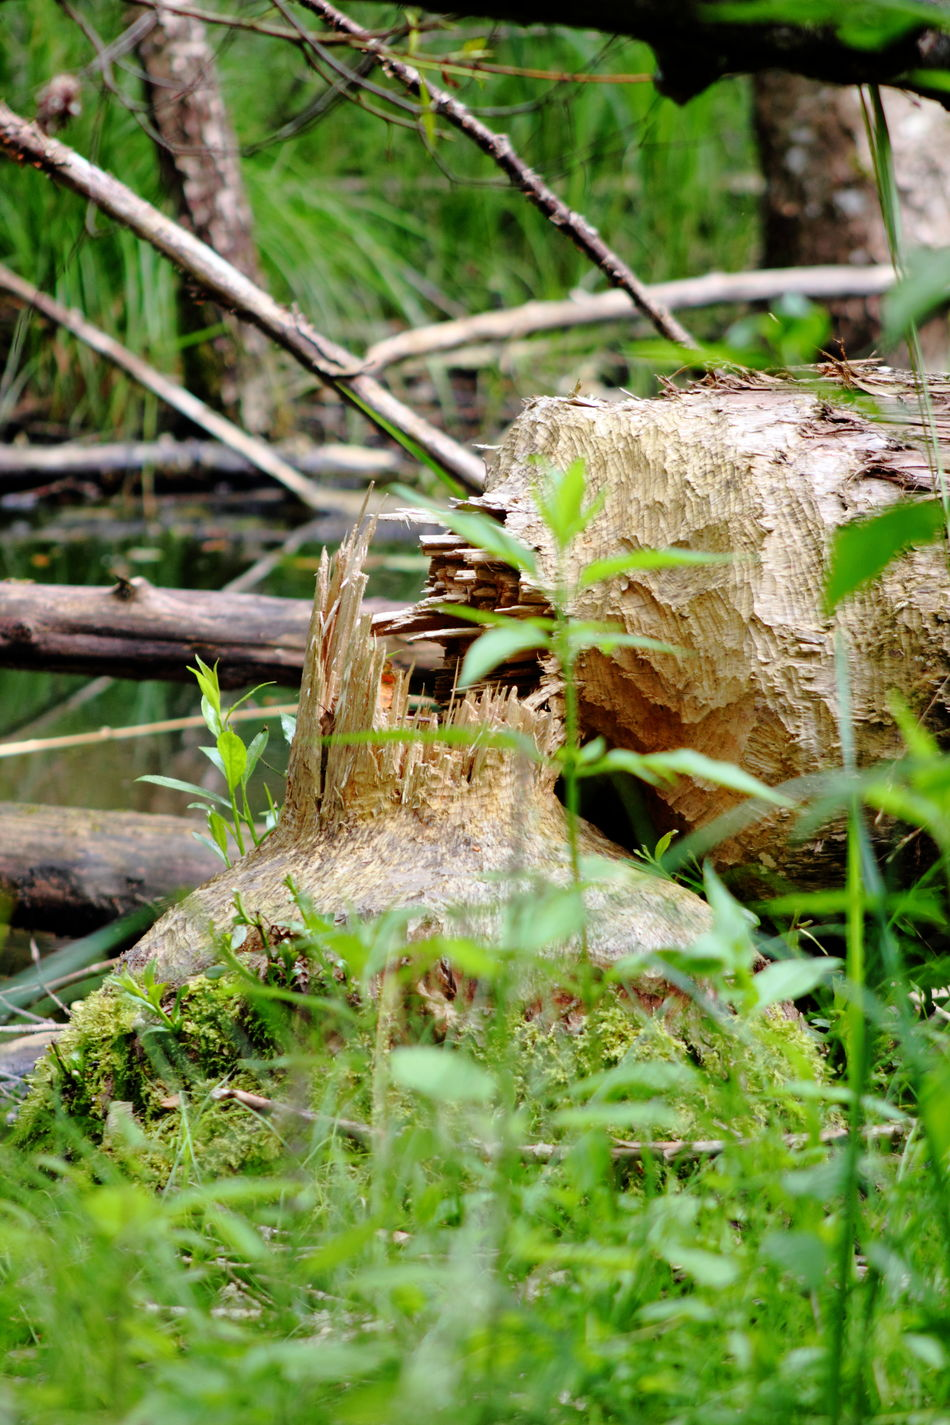 Beauty In Nature Beaver Work Biber's Werk Green Nature Outdoors Plant Tranquil Scene Wood